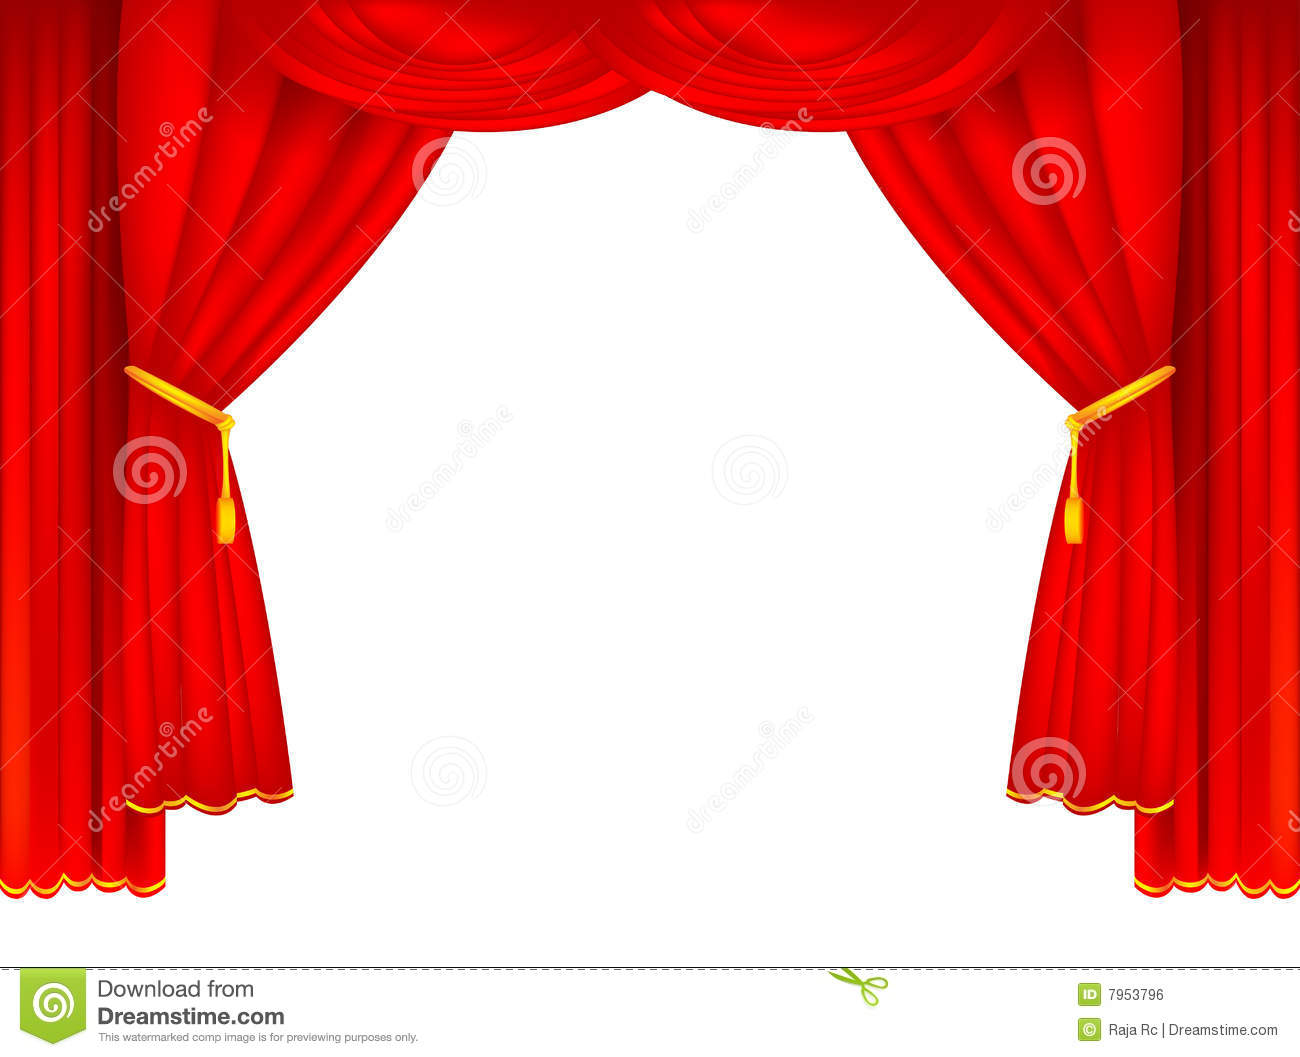 Free Clip Art Stage Curtains